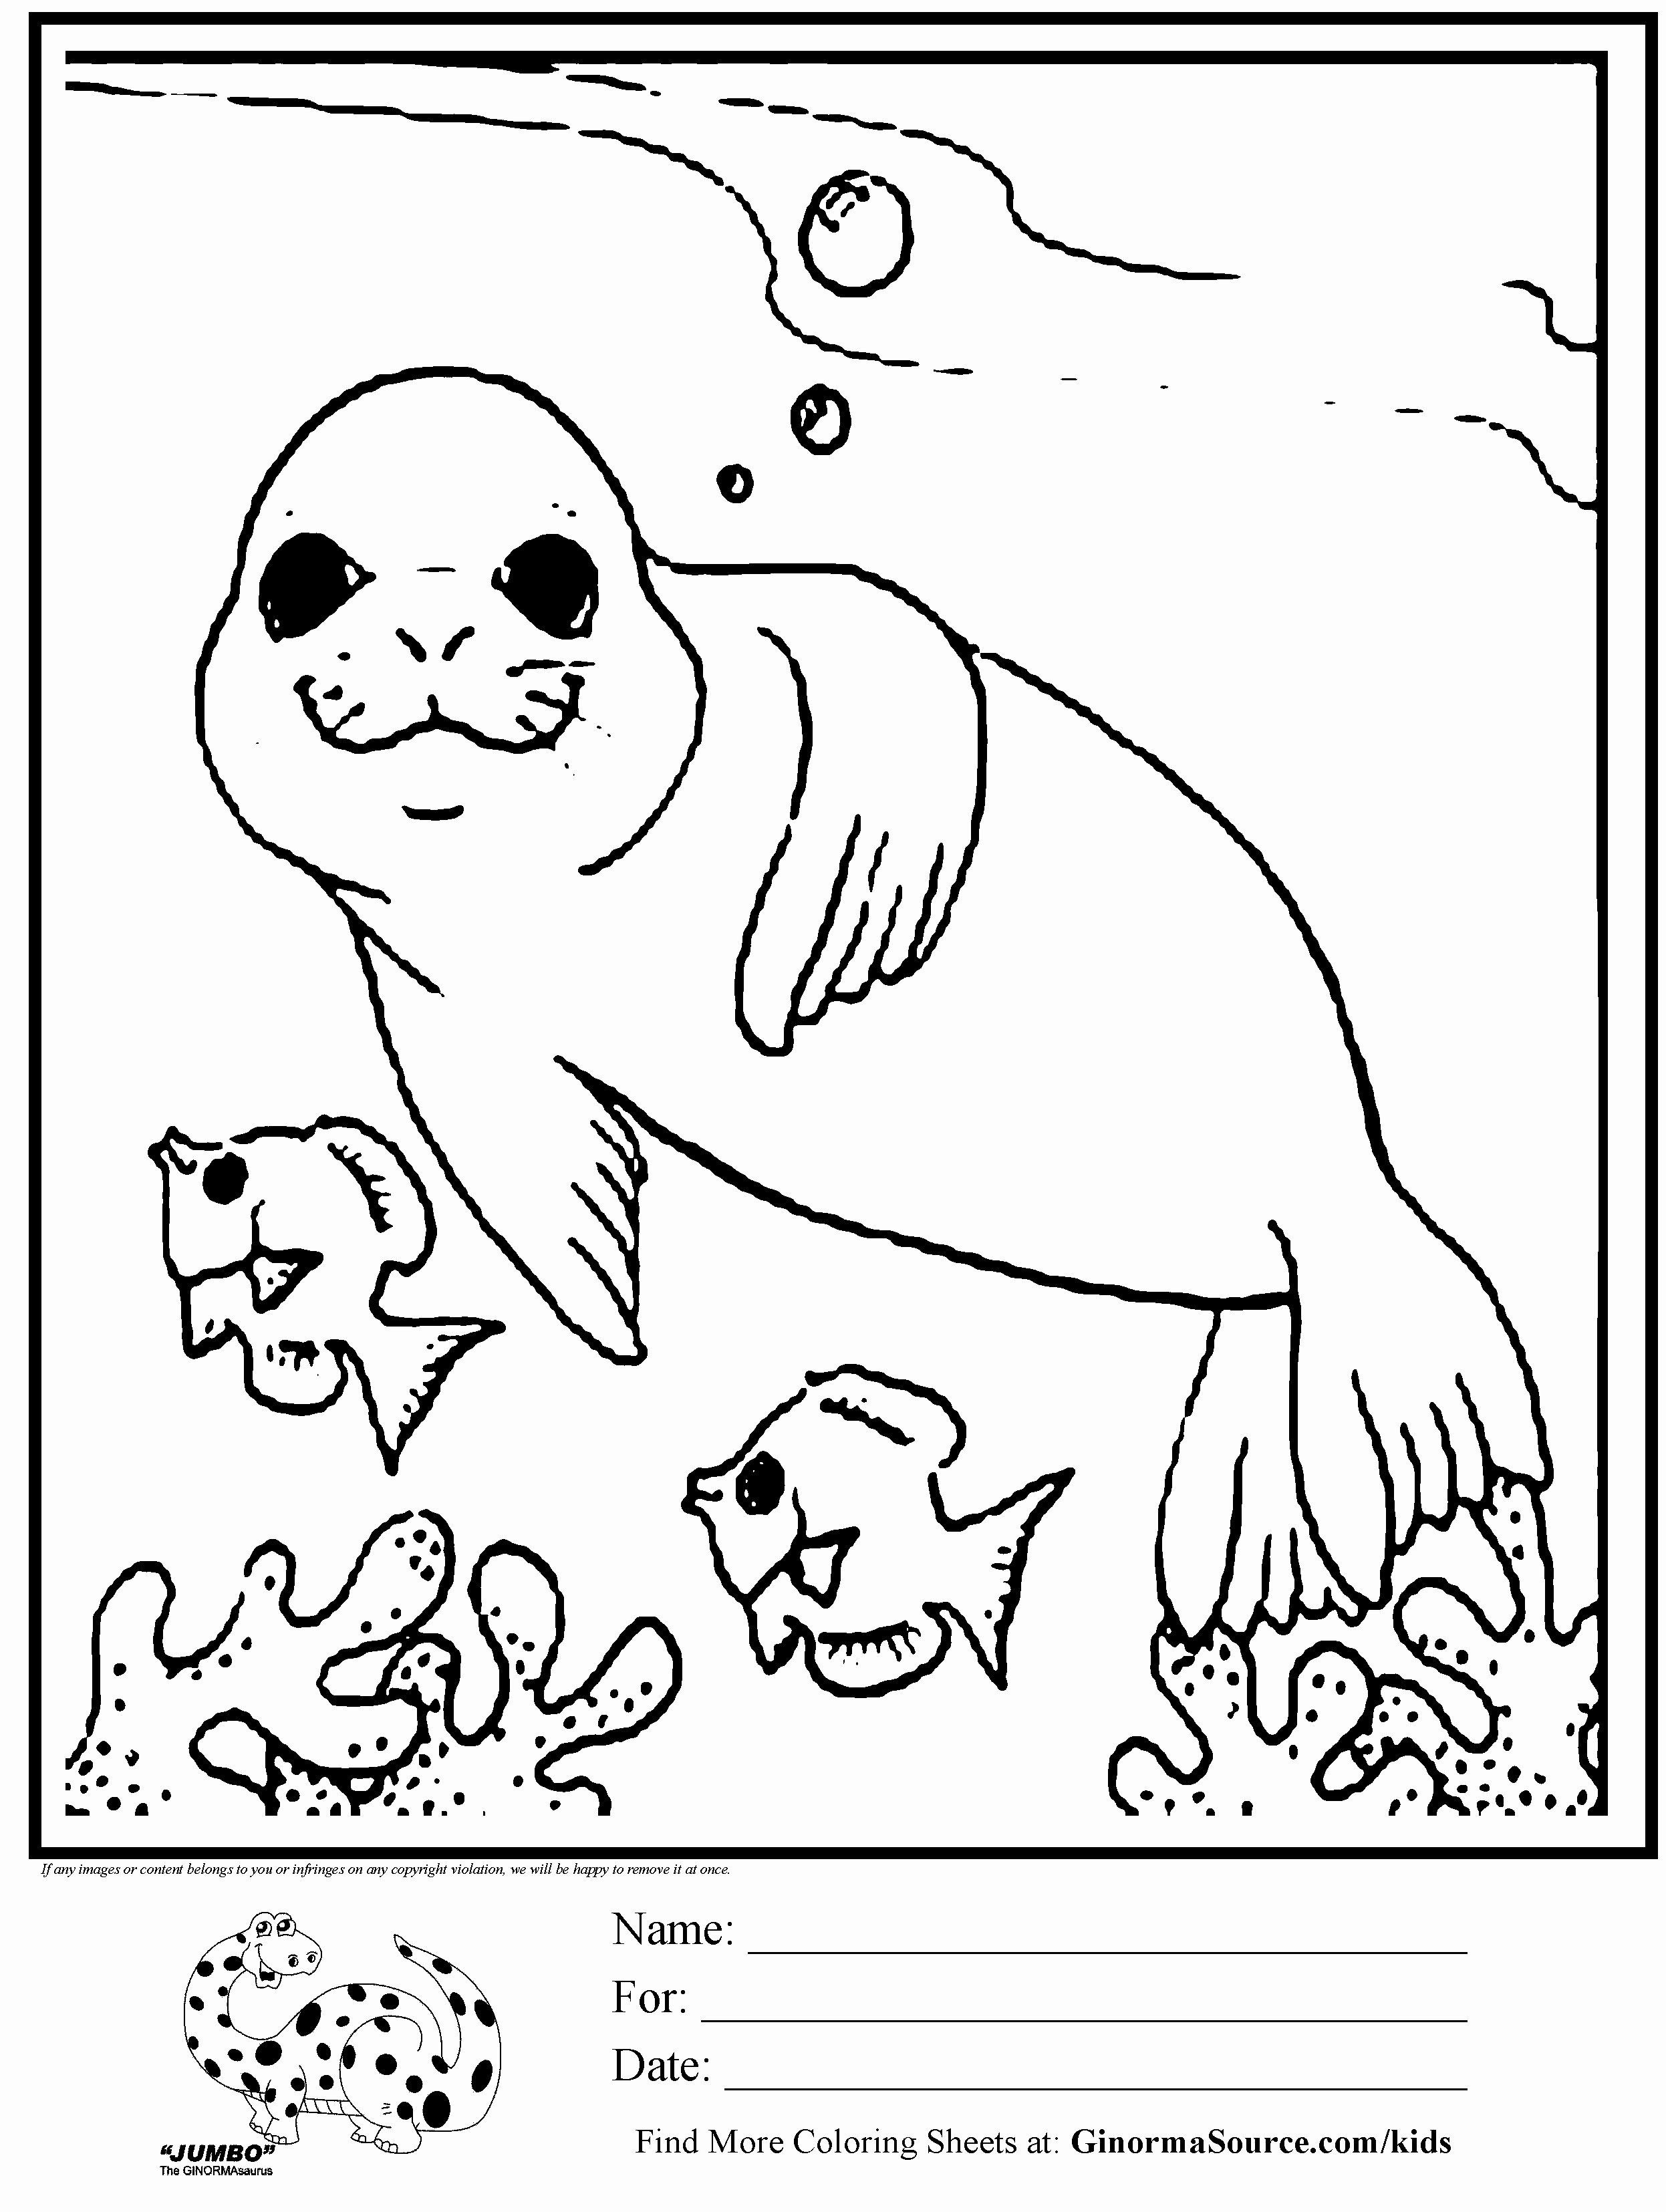 Animal Coloring Pages For 6 Year Olds Coloring Pages Gallery In 2020 Halloween Coloring Pages Farm Animal Coloring Pages Free Coloring Pages